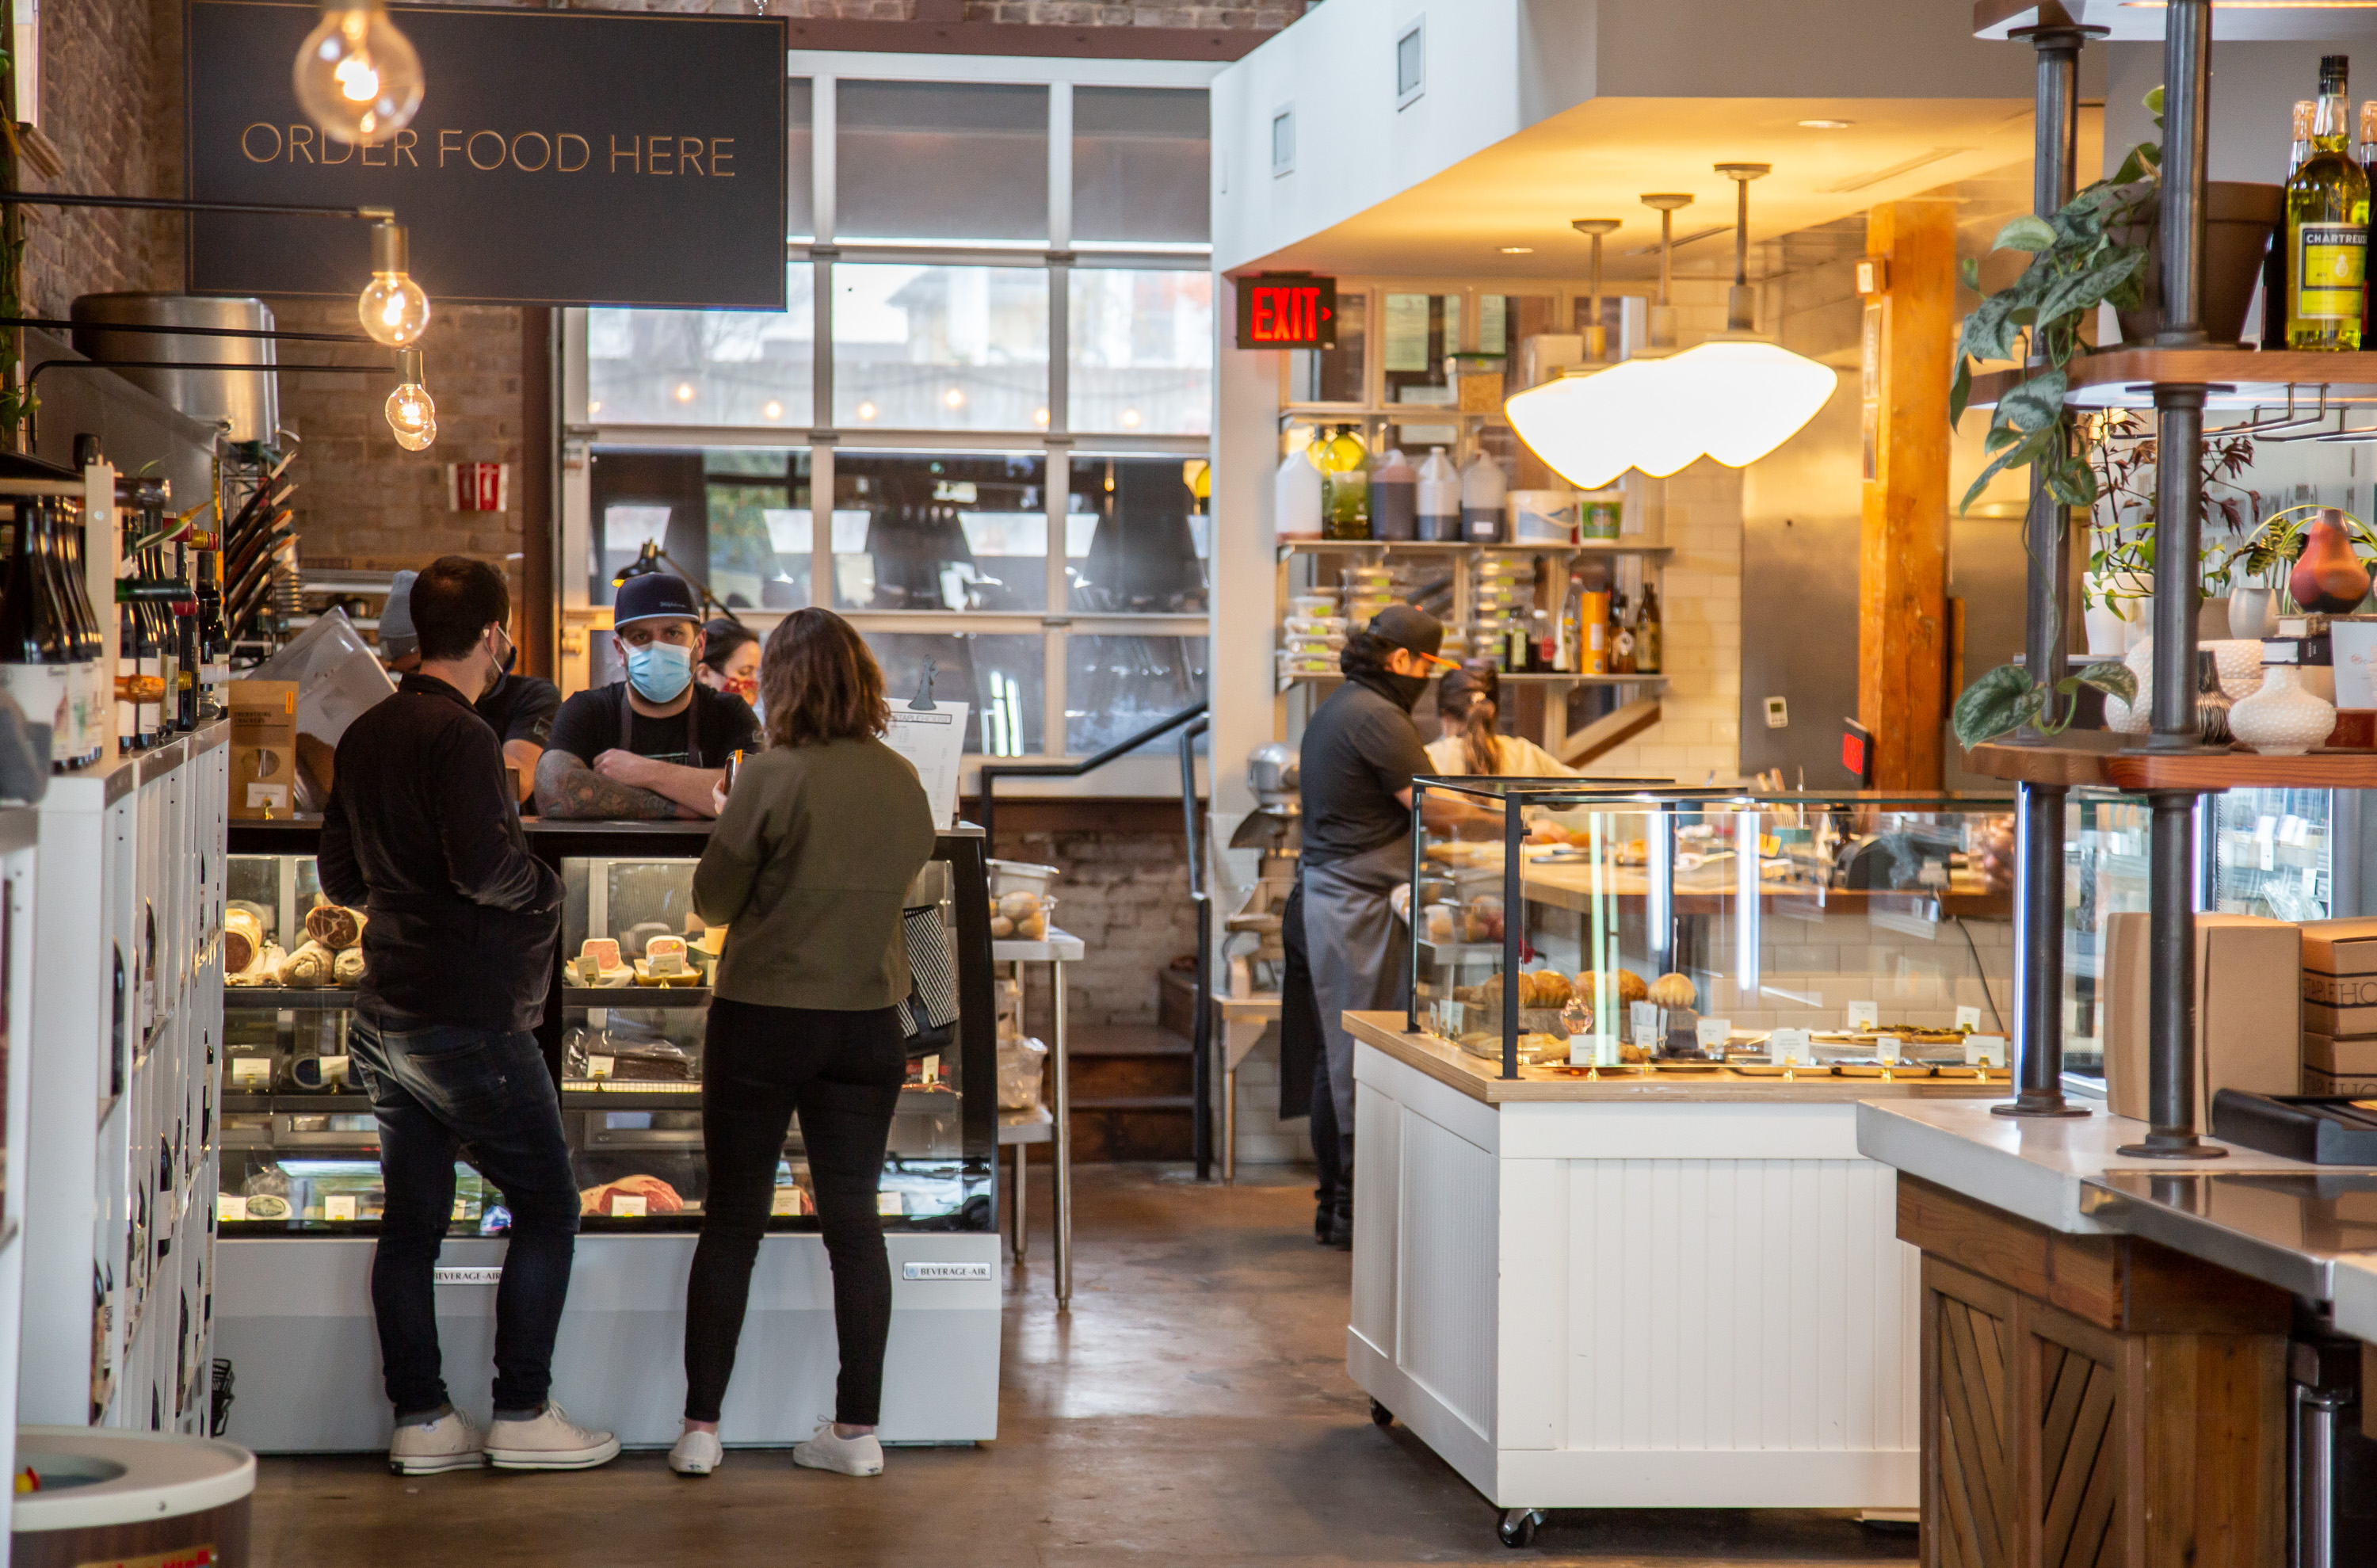 The newly opened Staplehouse market on Edgewood Avenue in Atlanta with two people ordering meats and cheese at the counter from a masked employee during the pandemic of 2020